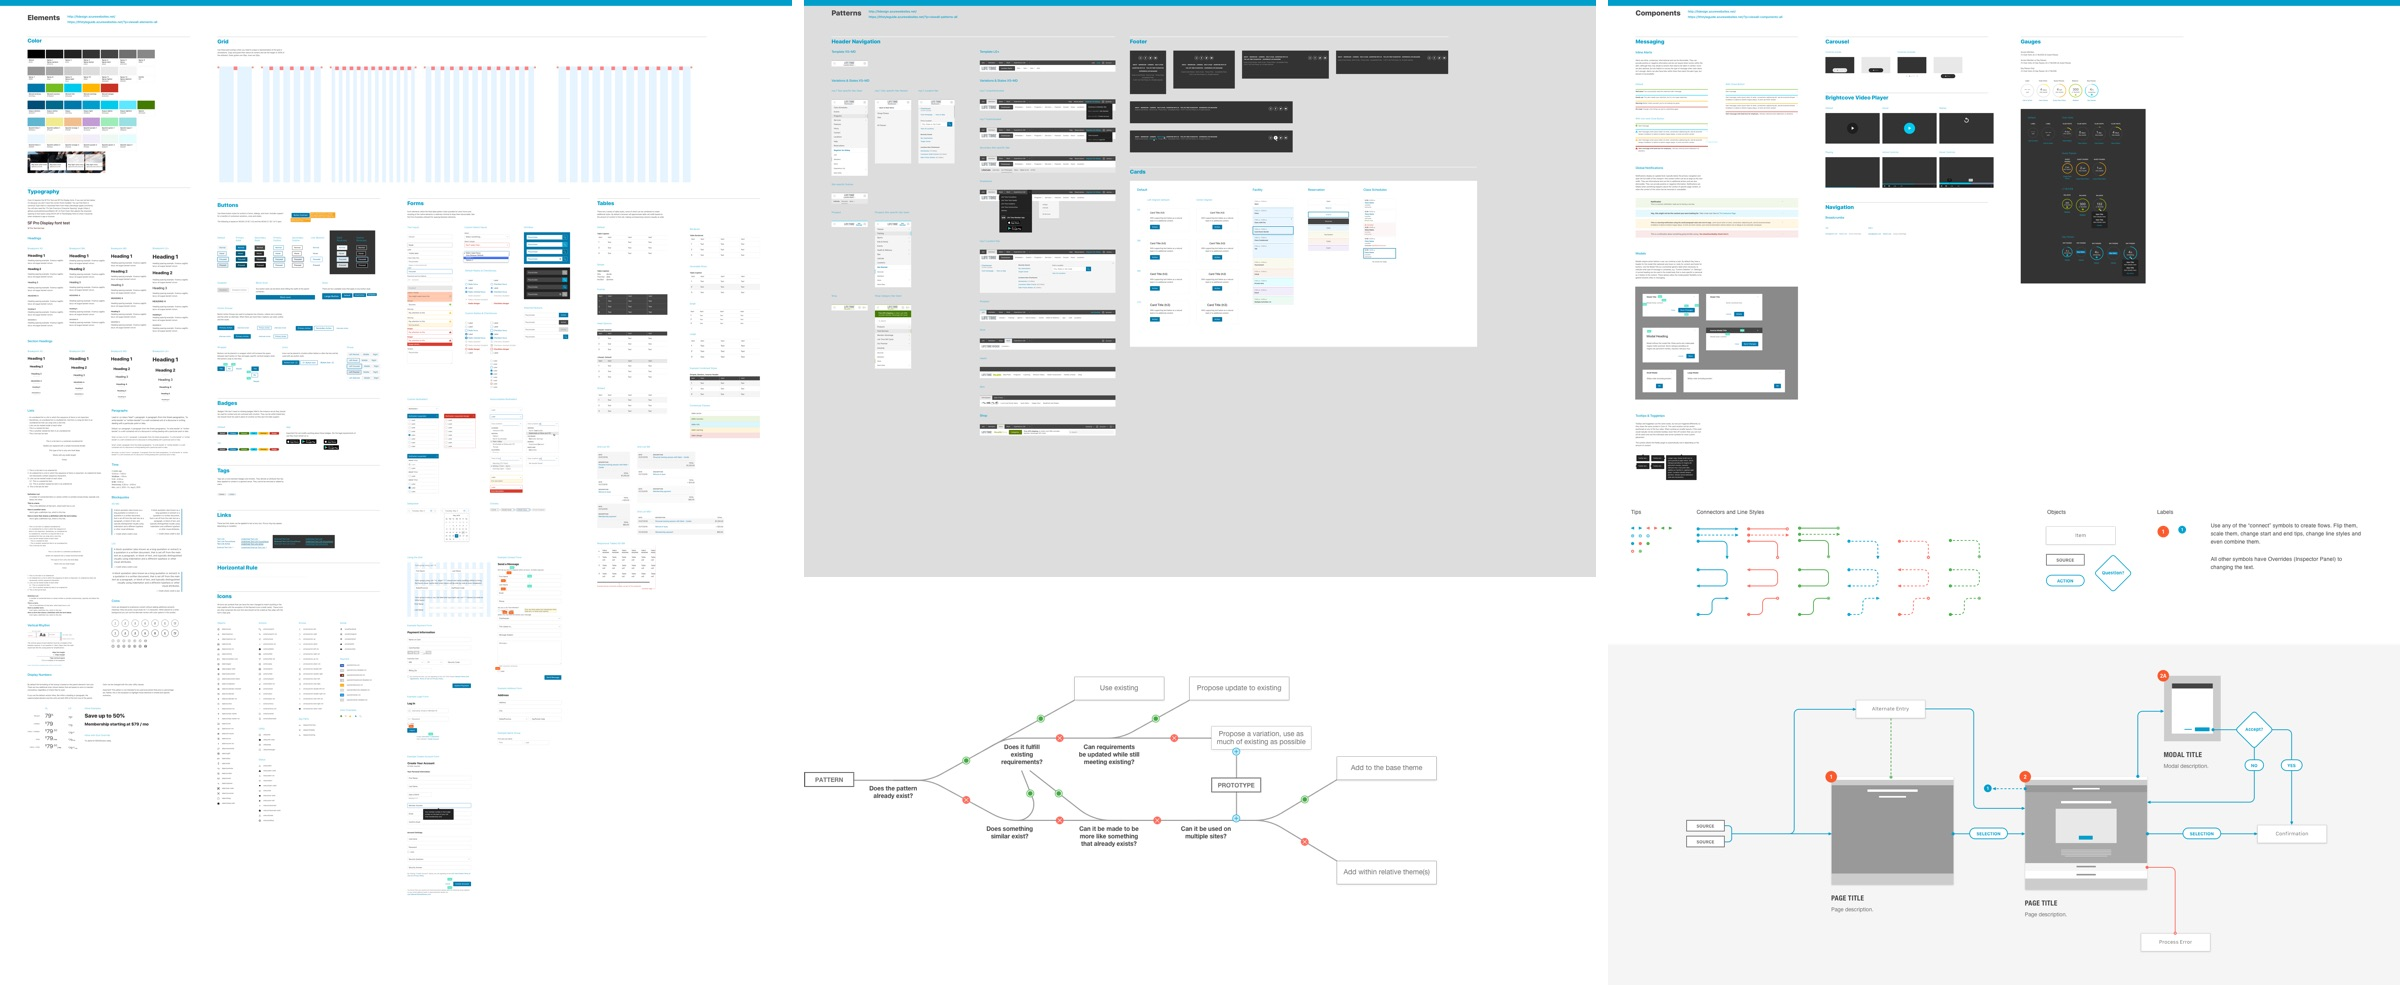 Core Design System User Interface Elements